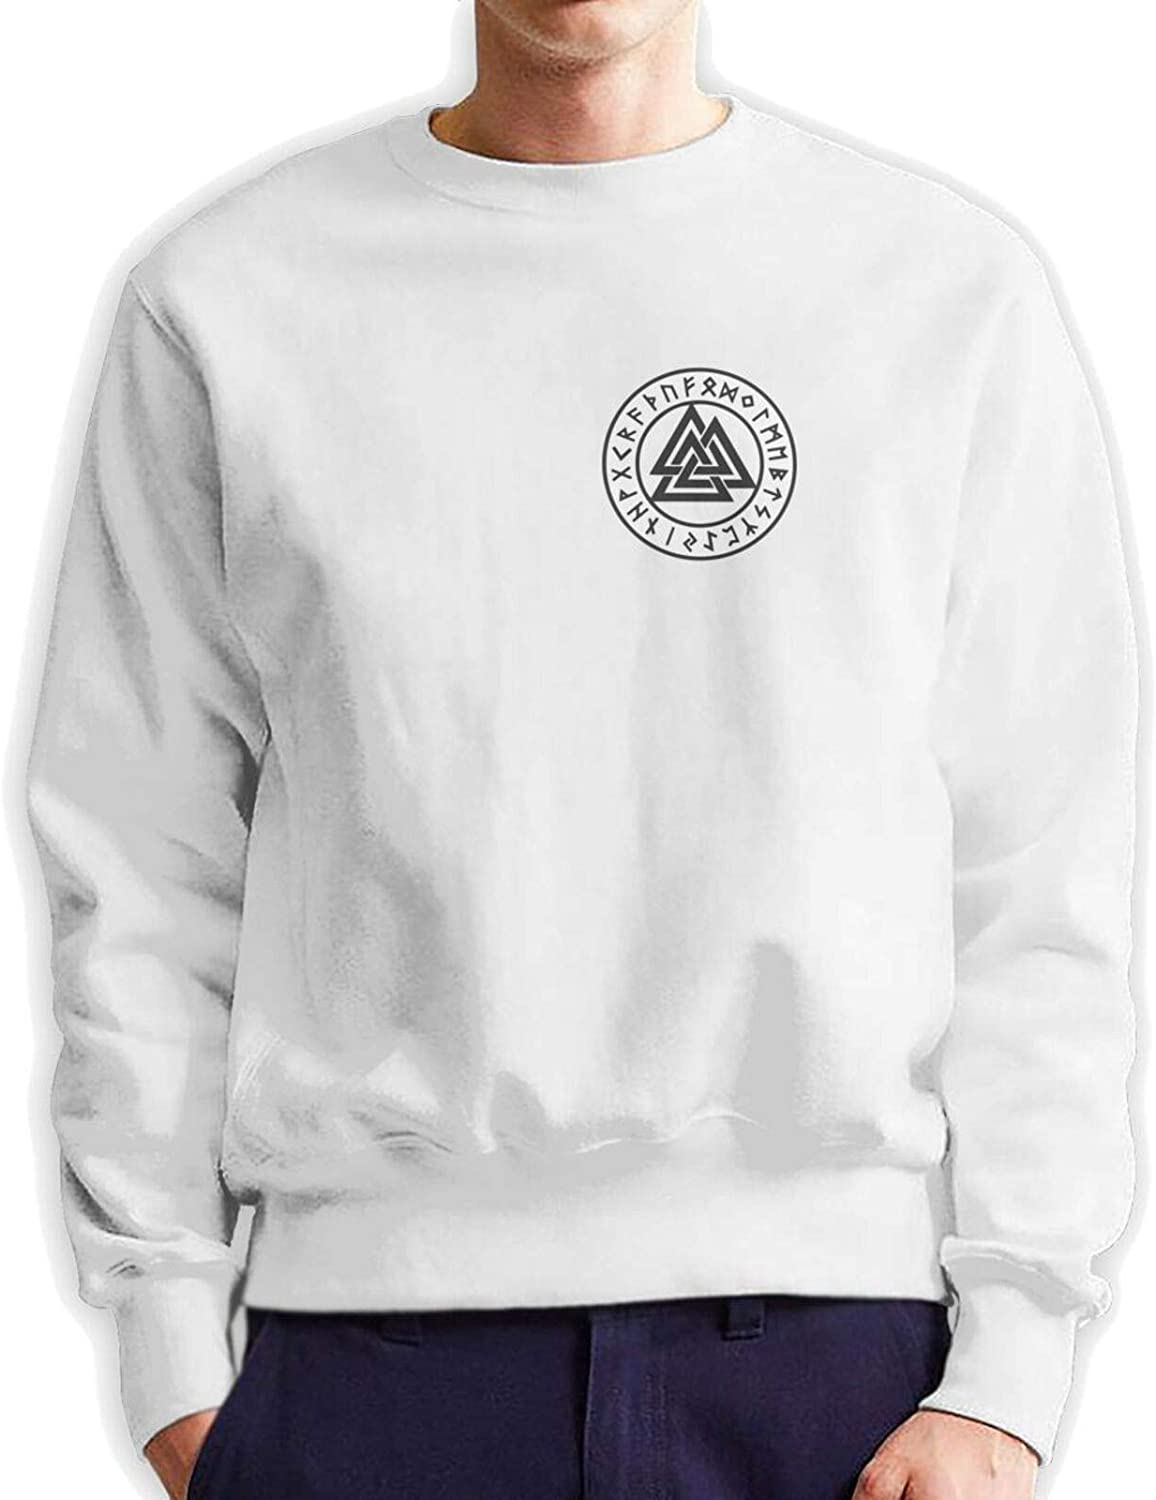 outlet Valknut The Symbol Of Odin Mans Crew Neck Hoodie Authentic Quantity limited Cotto